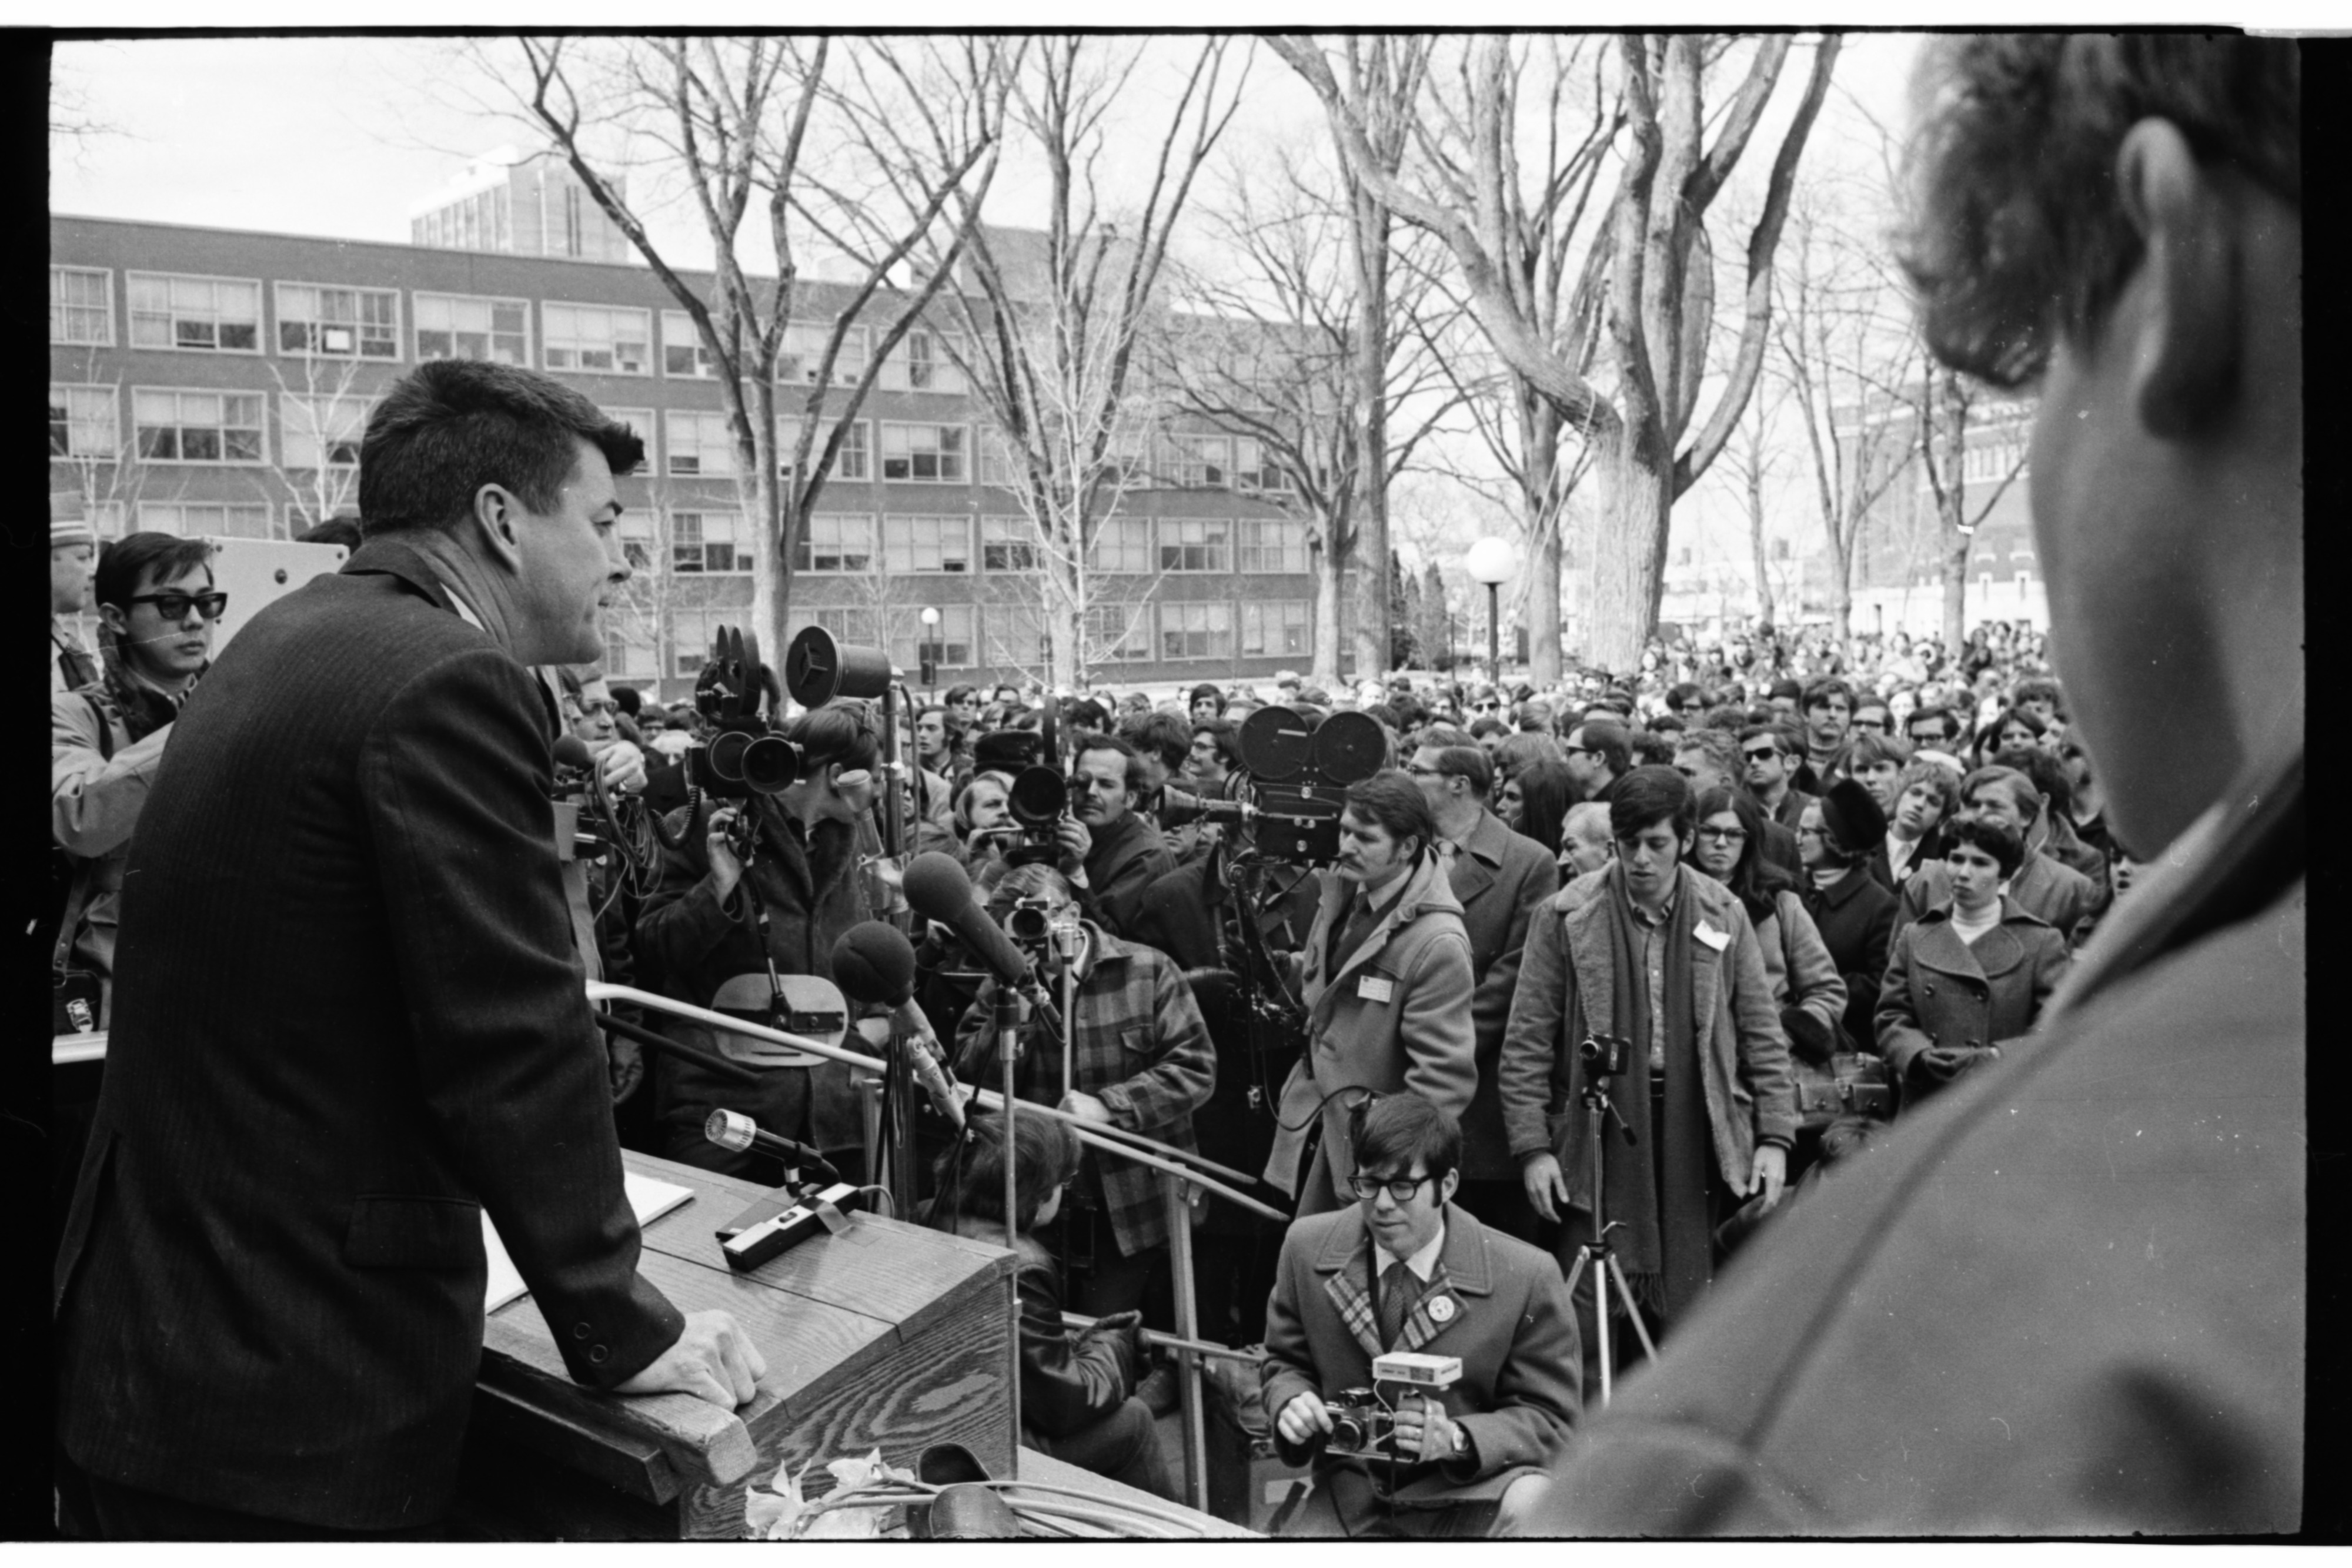 U.S. Rep. Paul McCloskey Speaks at ENACT Eco-Rally on University of Michigan Diag, March 1970 image